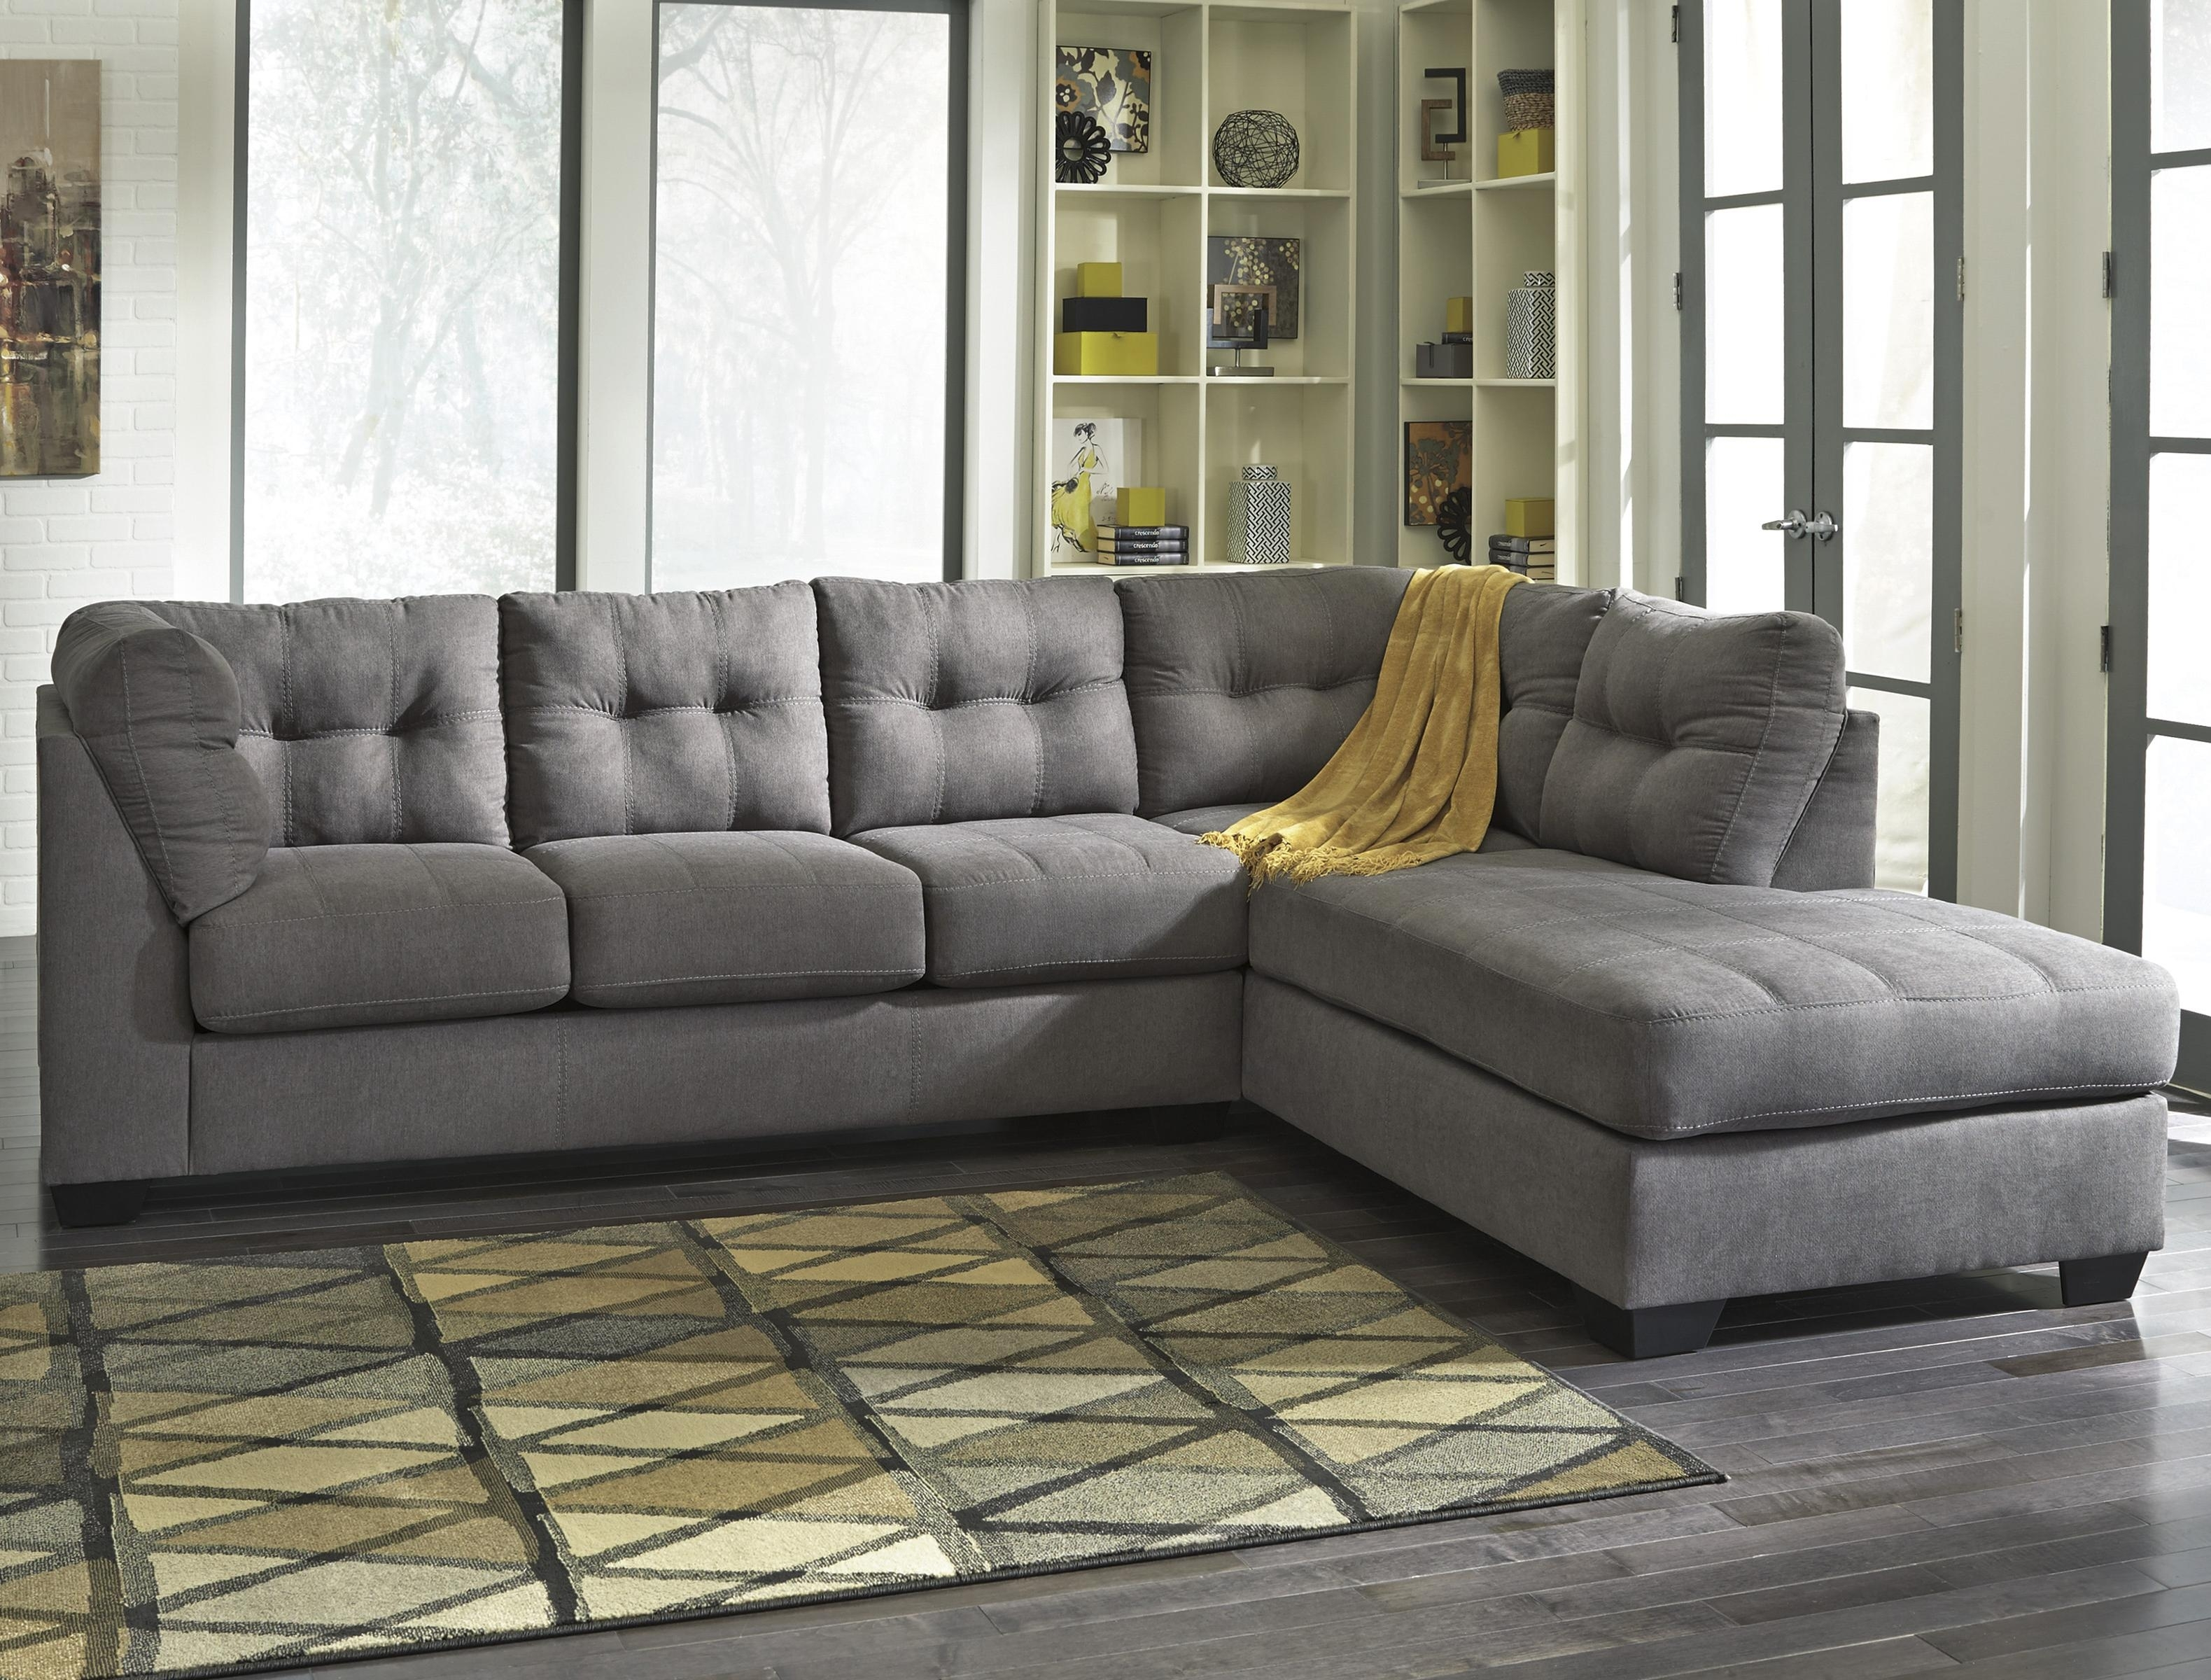 Luxury Sectional Sofas Portland Oregon 45 For Your Sectional Sofas with Sacramento Sectional Sofas (Image 4 of 10)